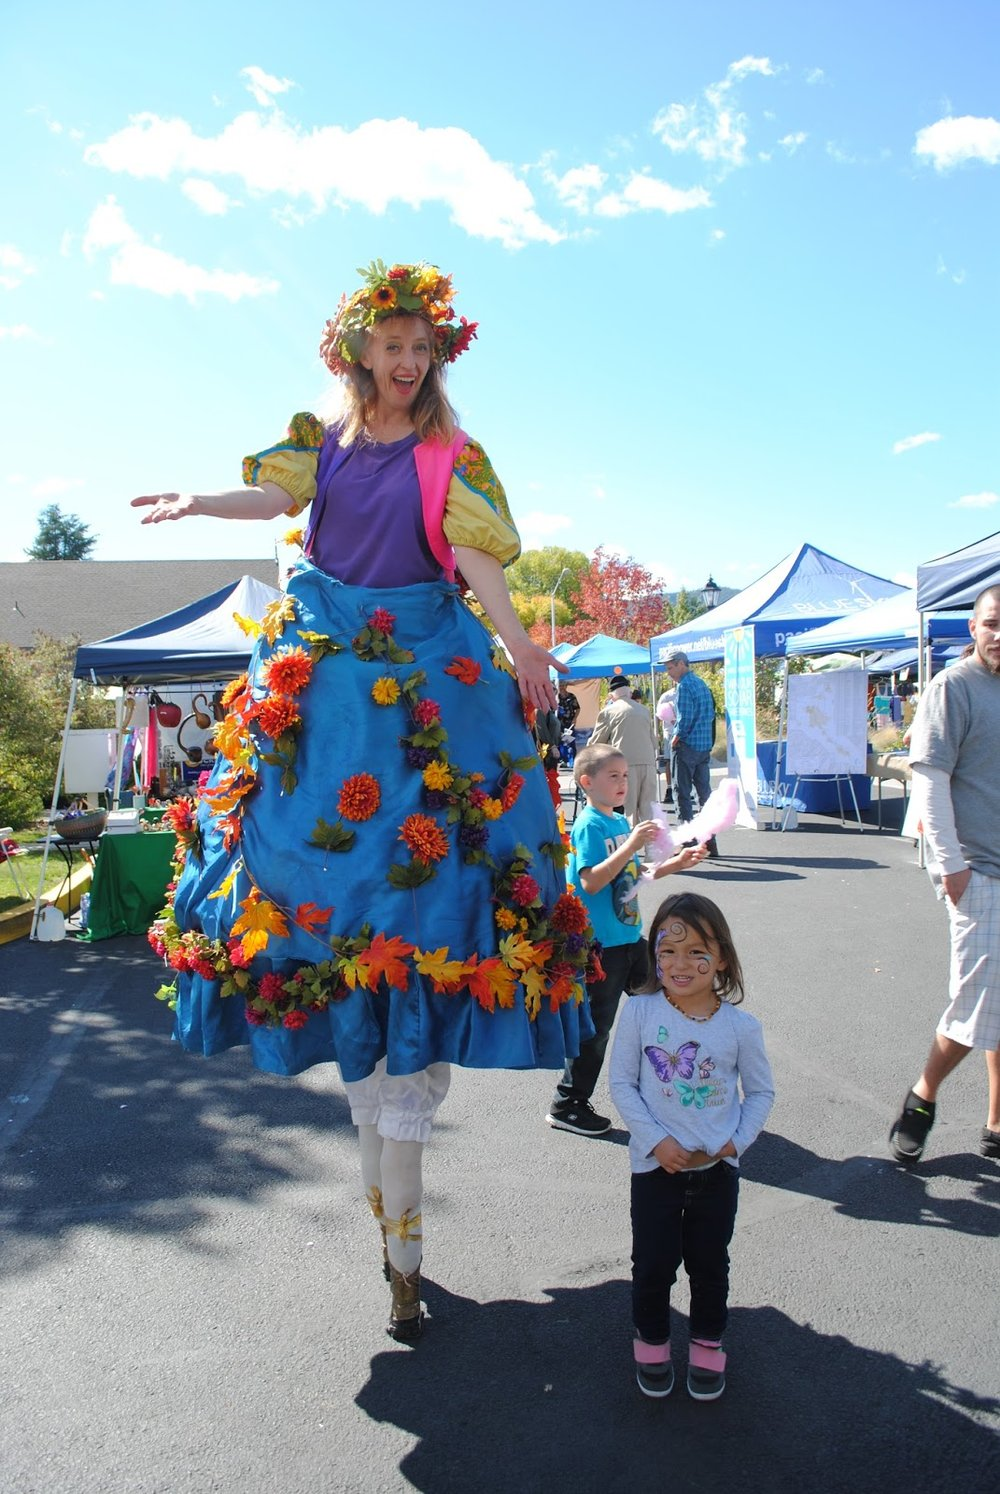 TALENT HARVEST FESTIVAL  & RUN - What to do in Southern Oregon - Kids - Family - Fall